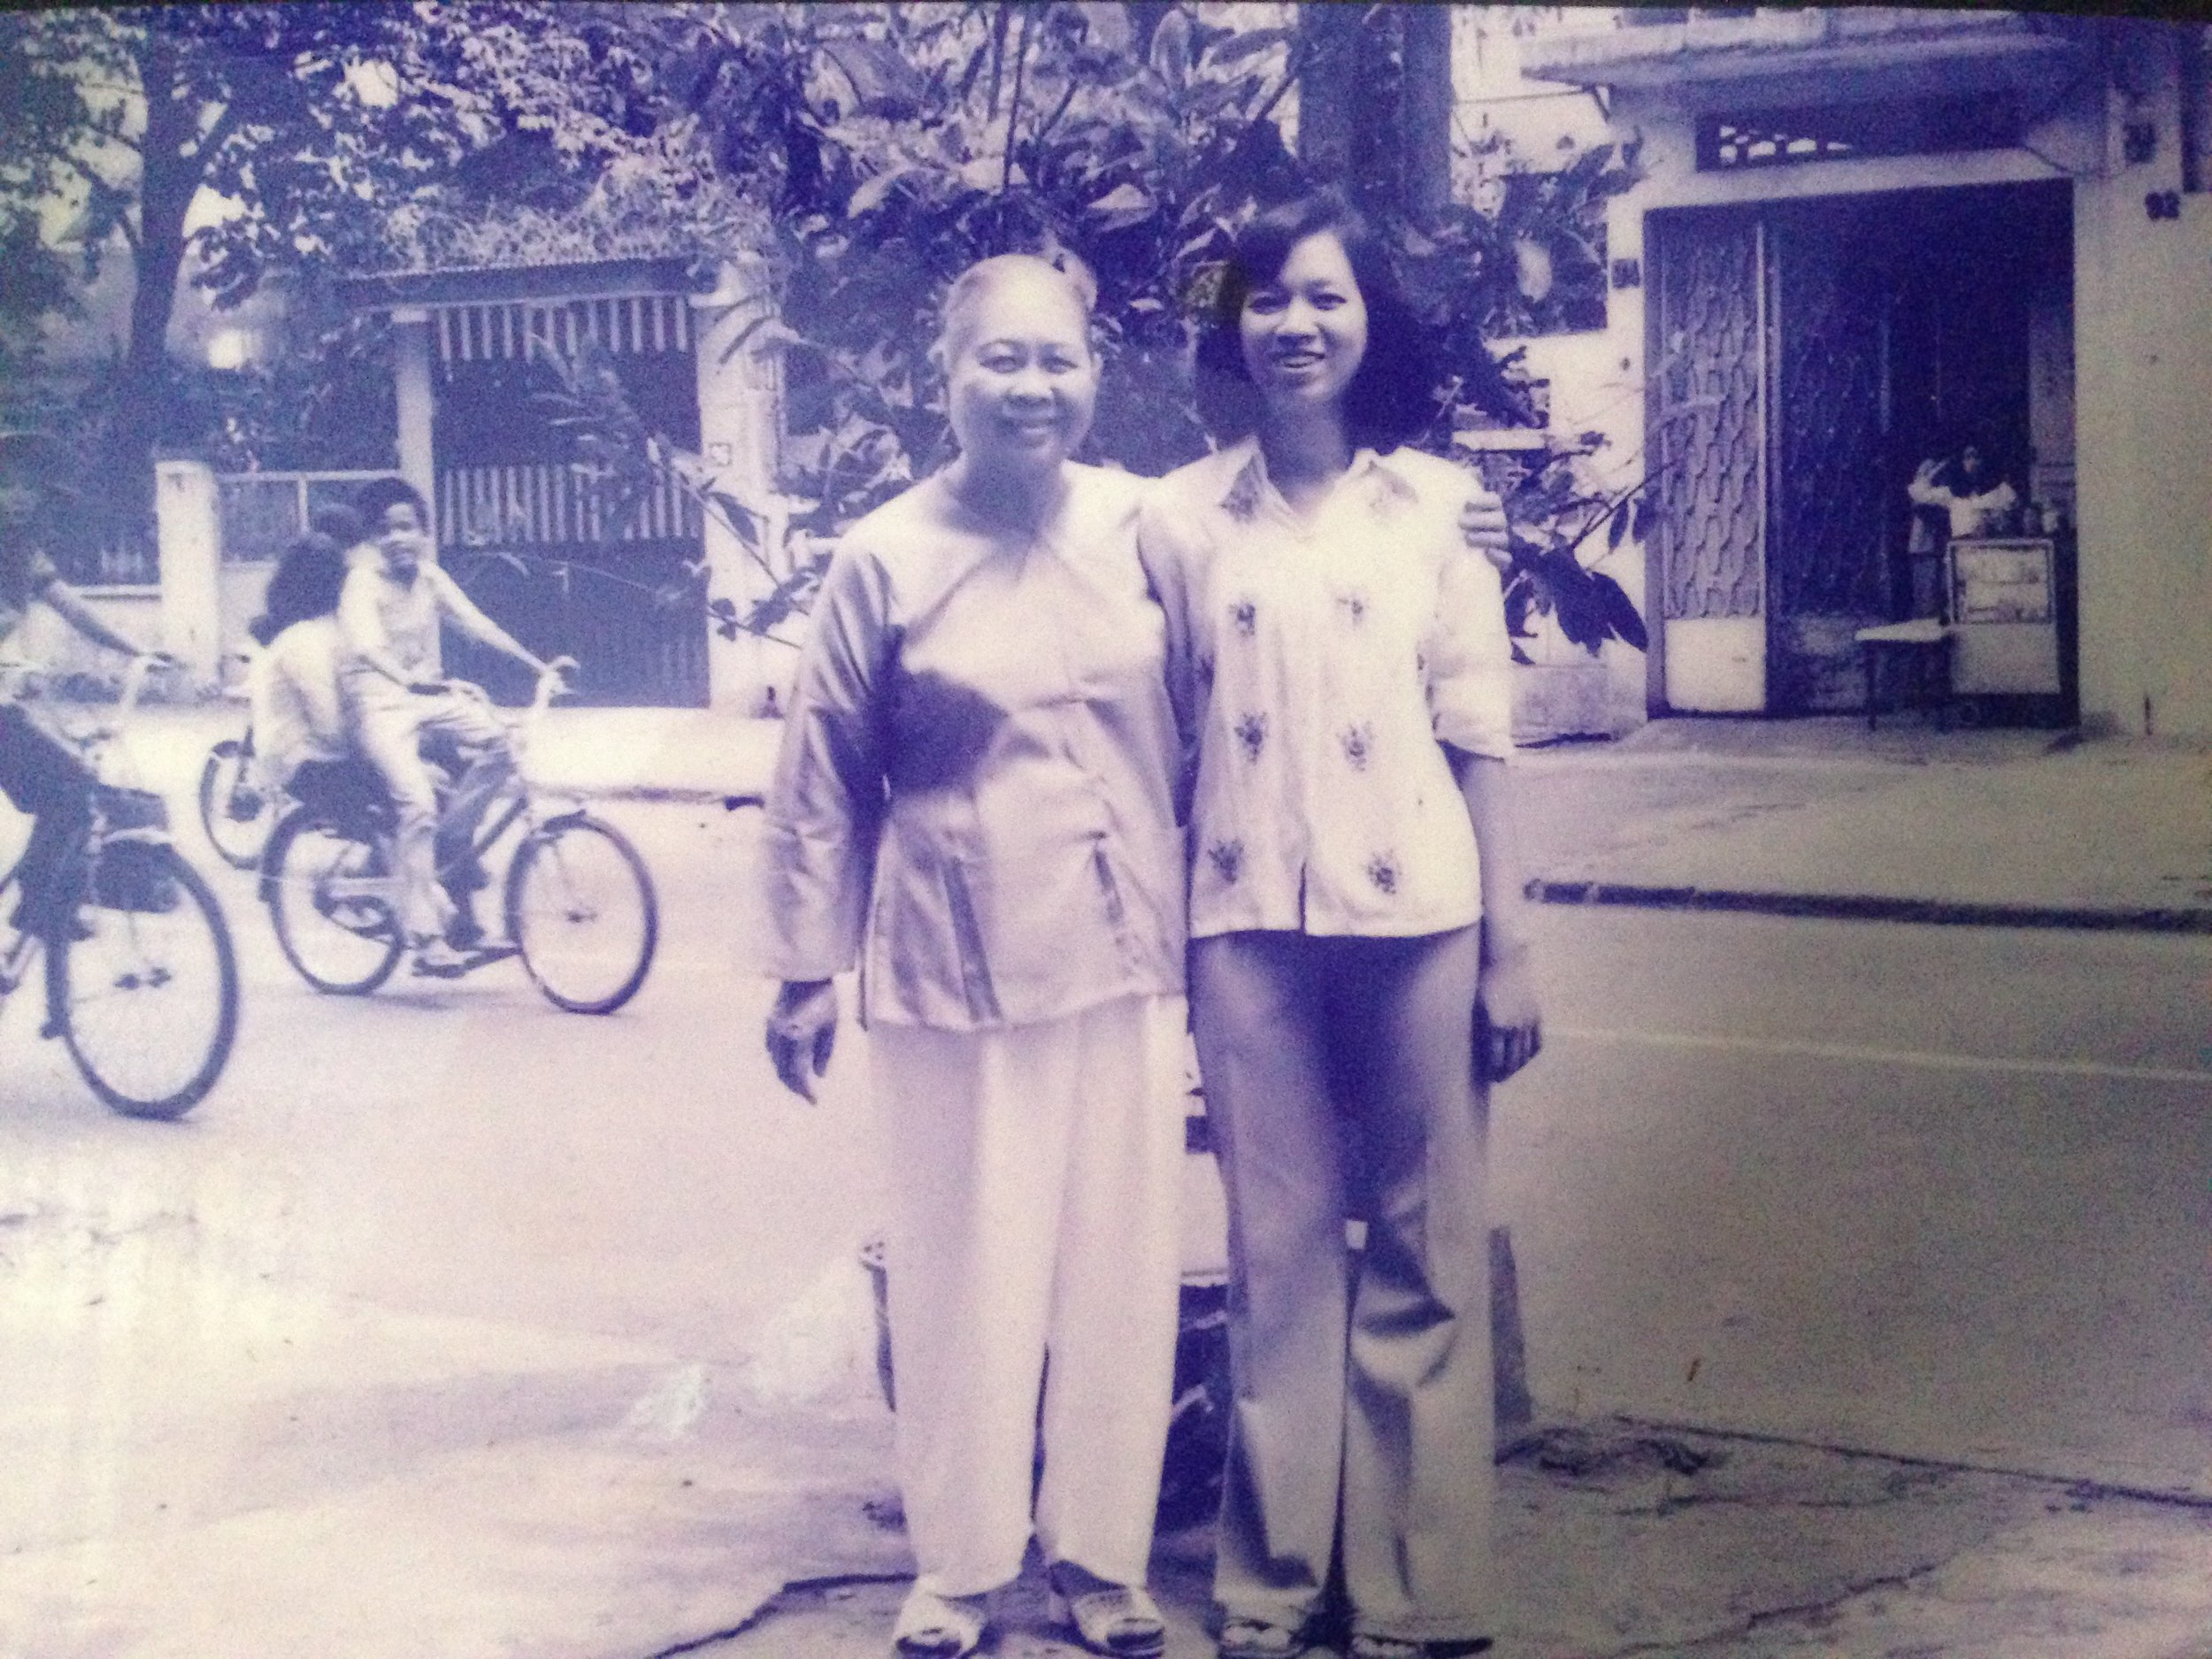 Catherine's mother at a younger age in Viet Nam